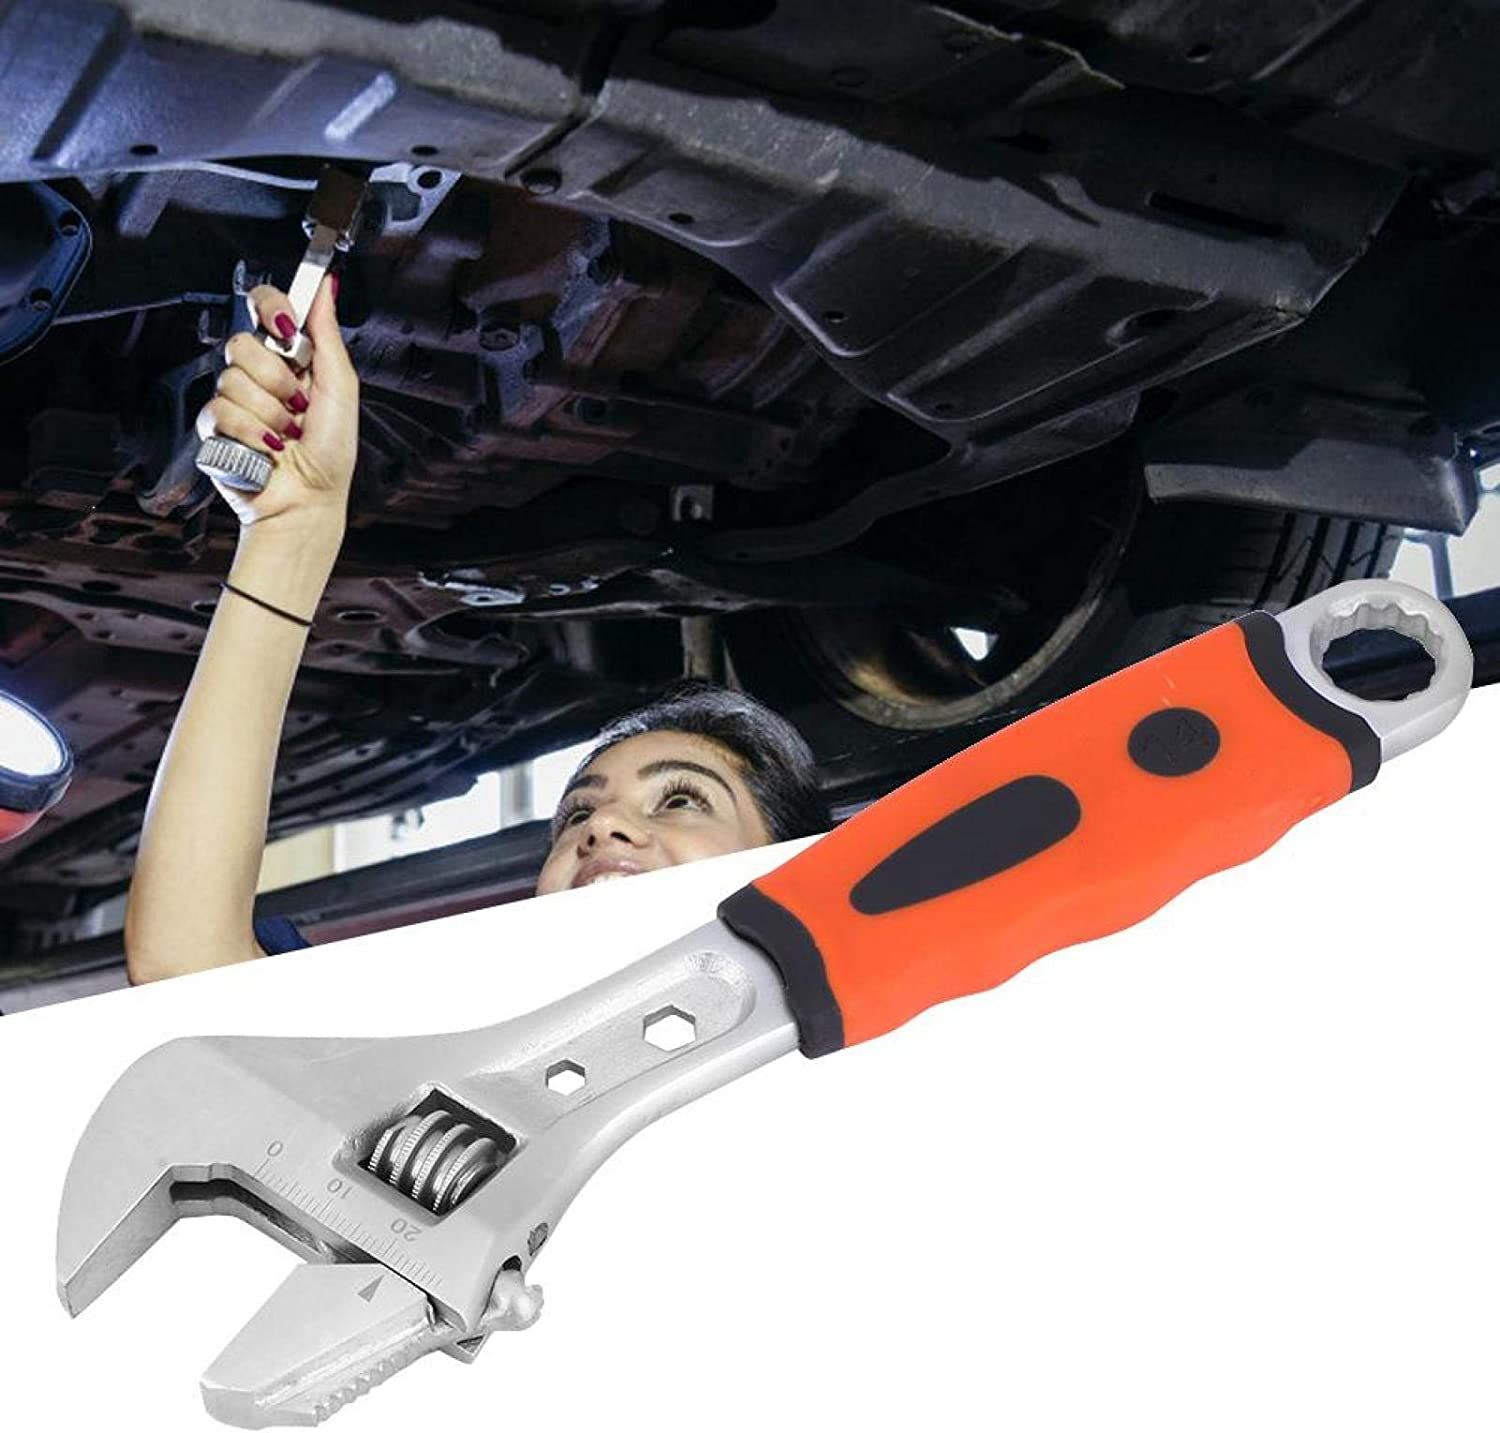 Adjustable Wrench Plumber Tool Ergonomic Wear Resistant High Precise Spanner For Plumbing for Car 8 inches